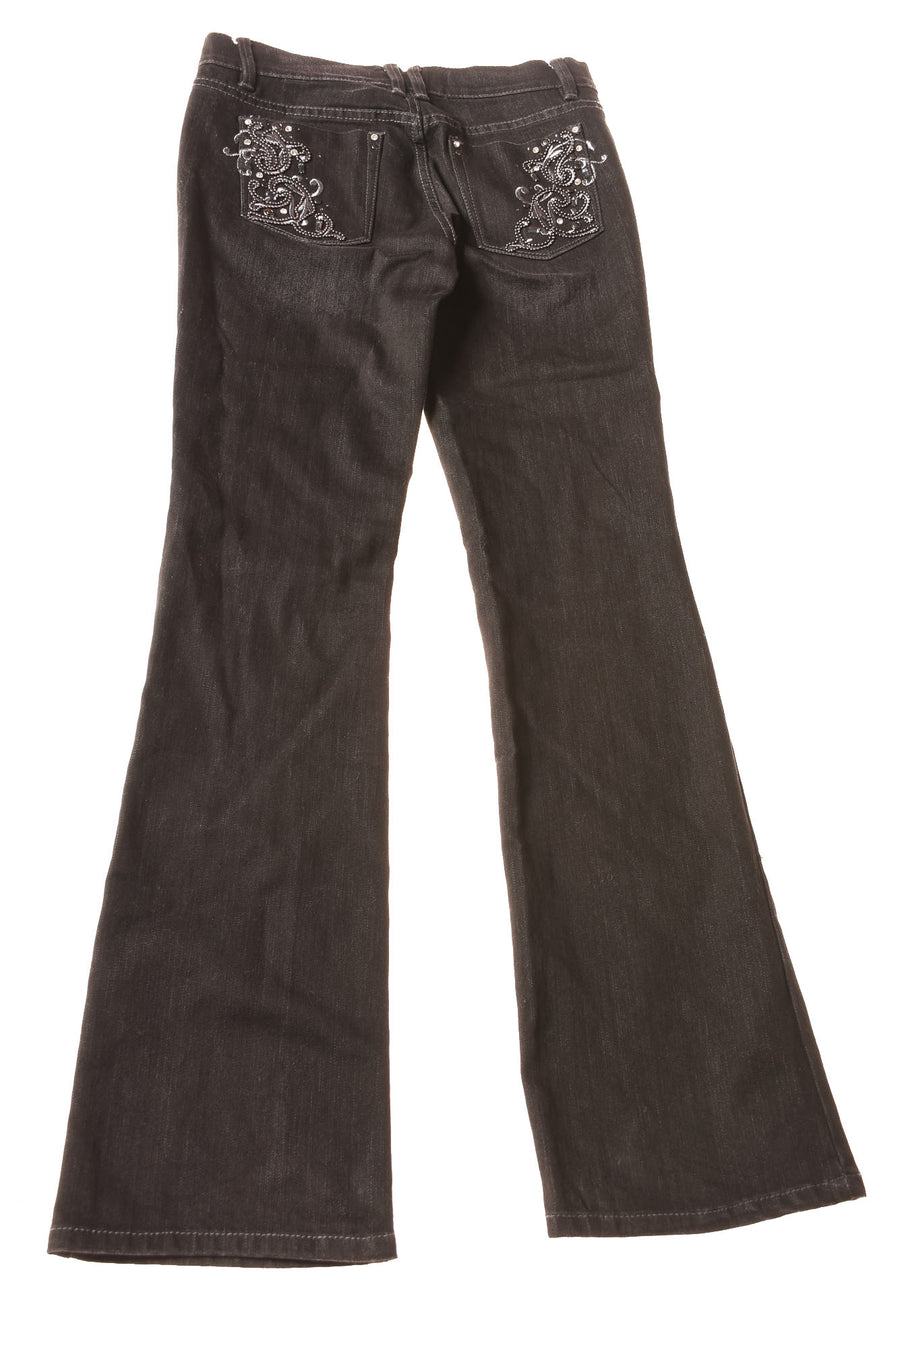 USED White House Black Market Women's Jeans 2 Black